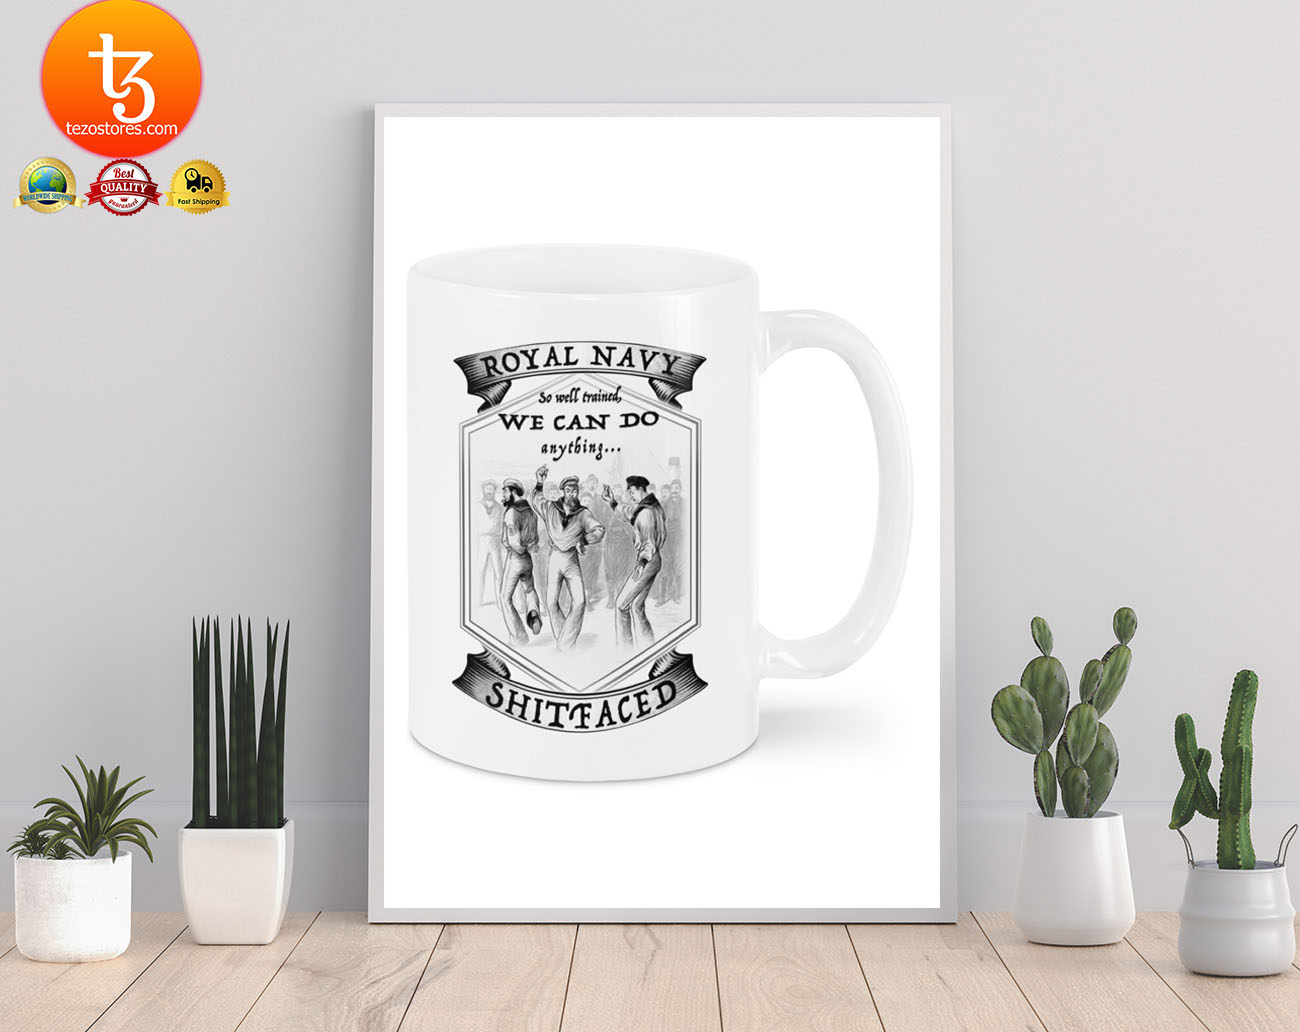 Royal navy so well trained we can do anything shitfaced mug 21